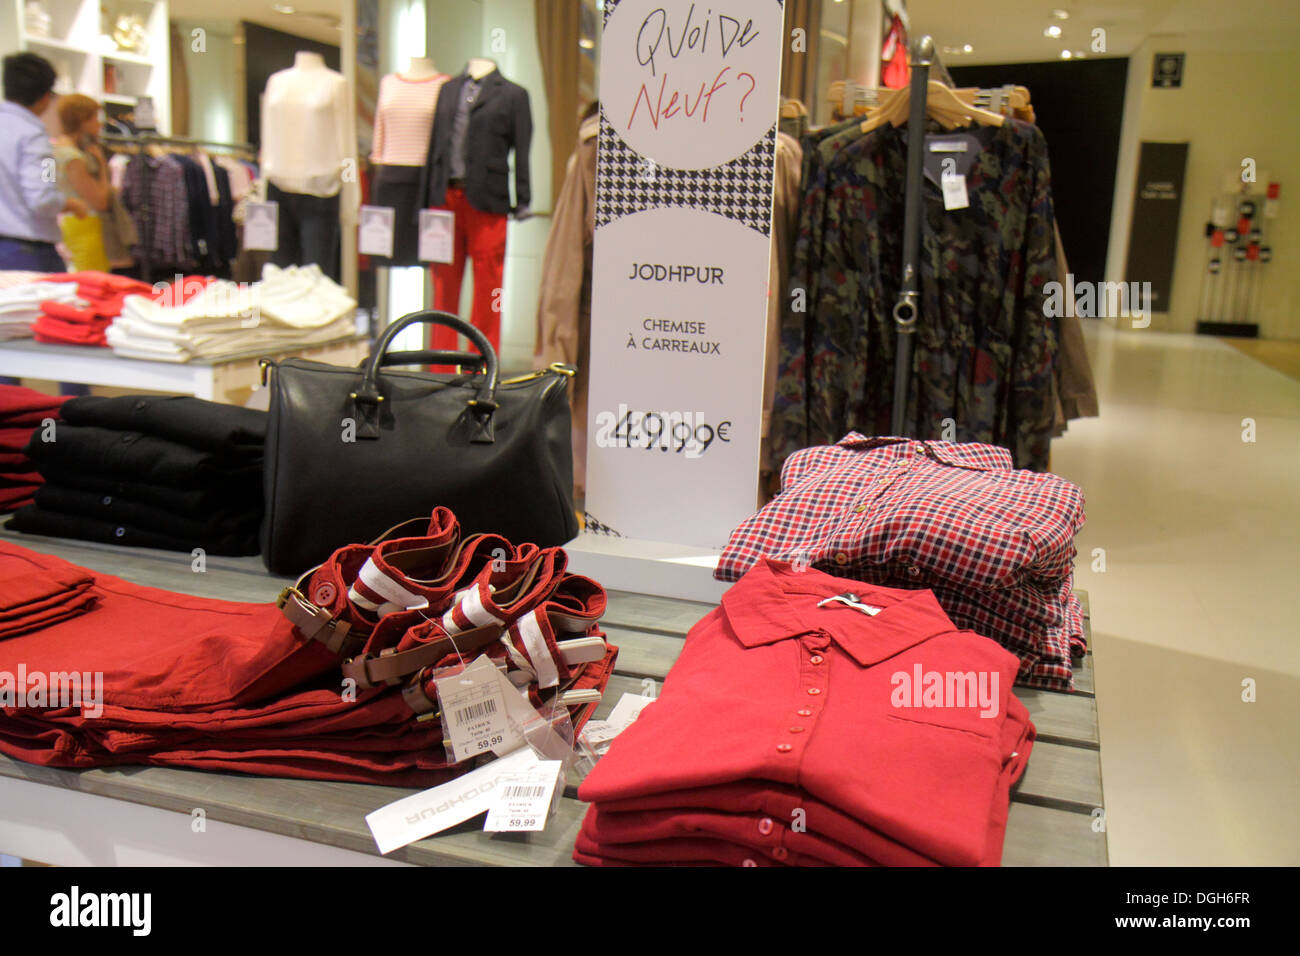 Paris France Europe French 9th arrondissement Boulevard Haussmann Galeries Lafayette department store shopping fashion retail di - Stock Image